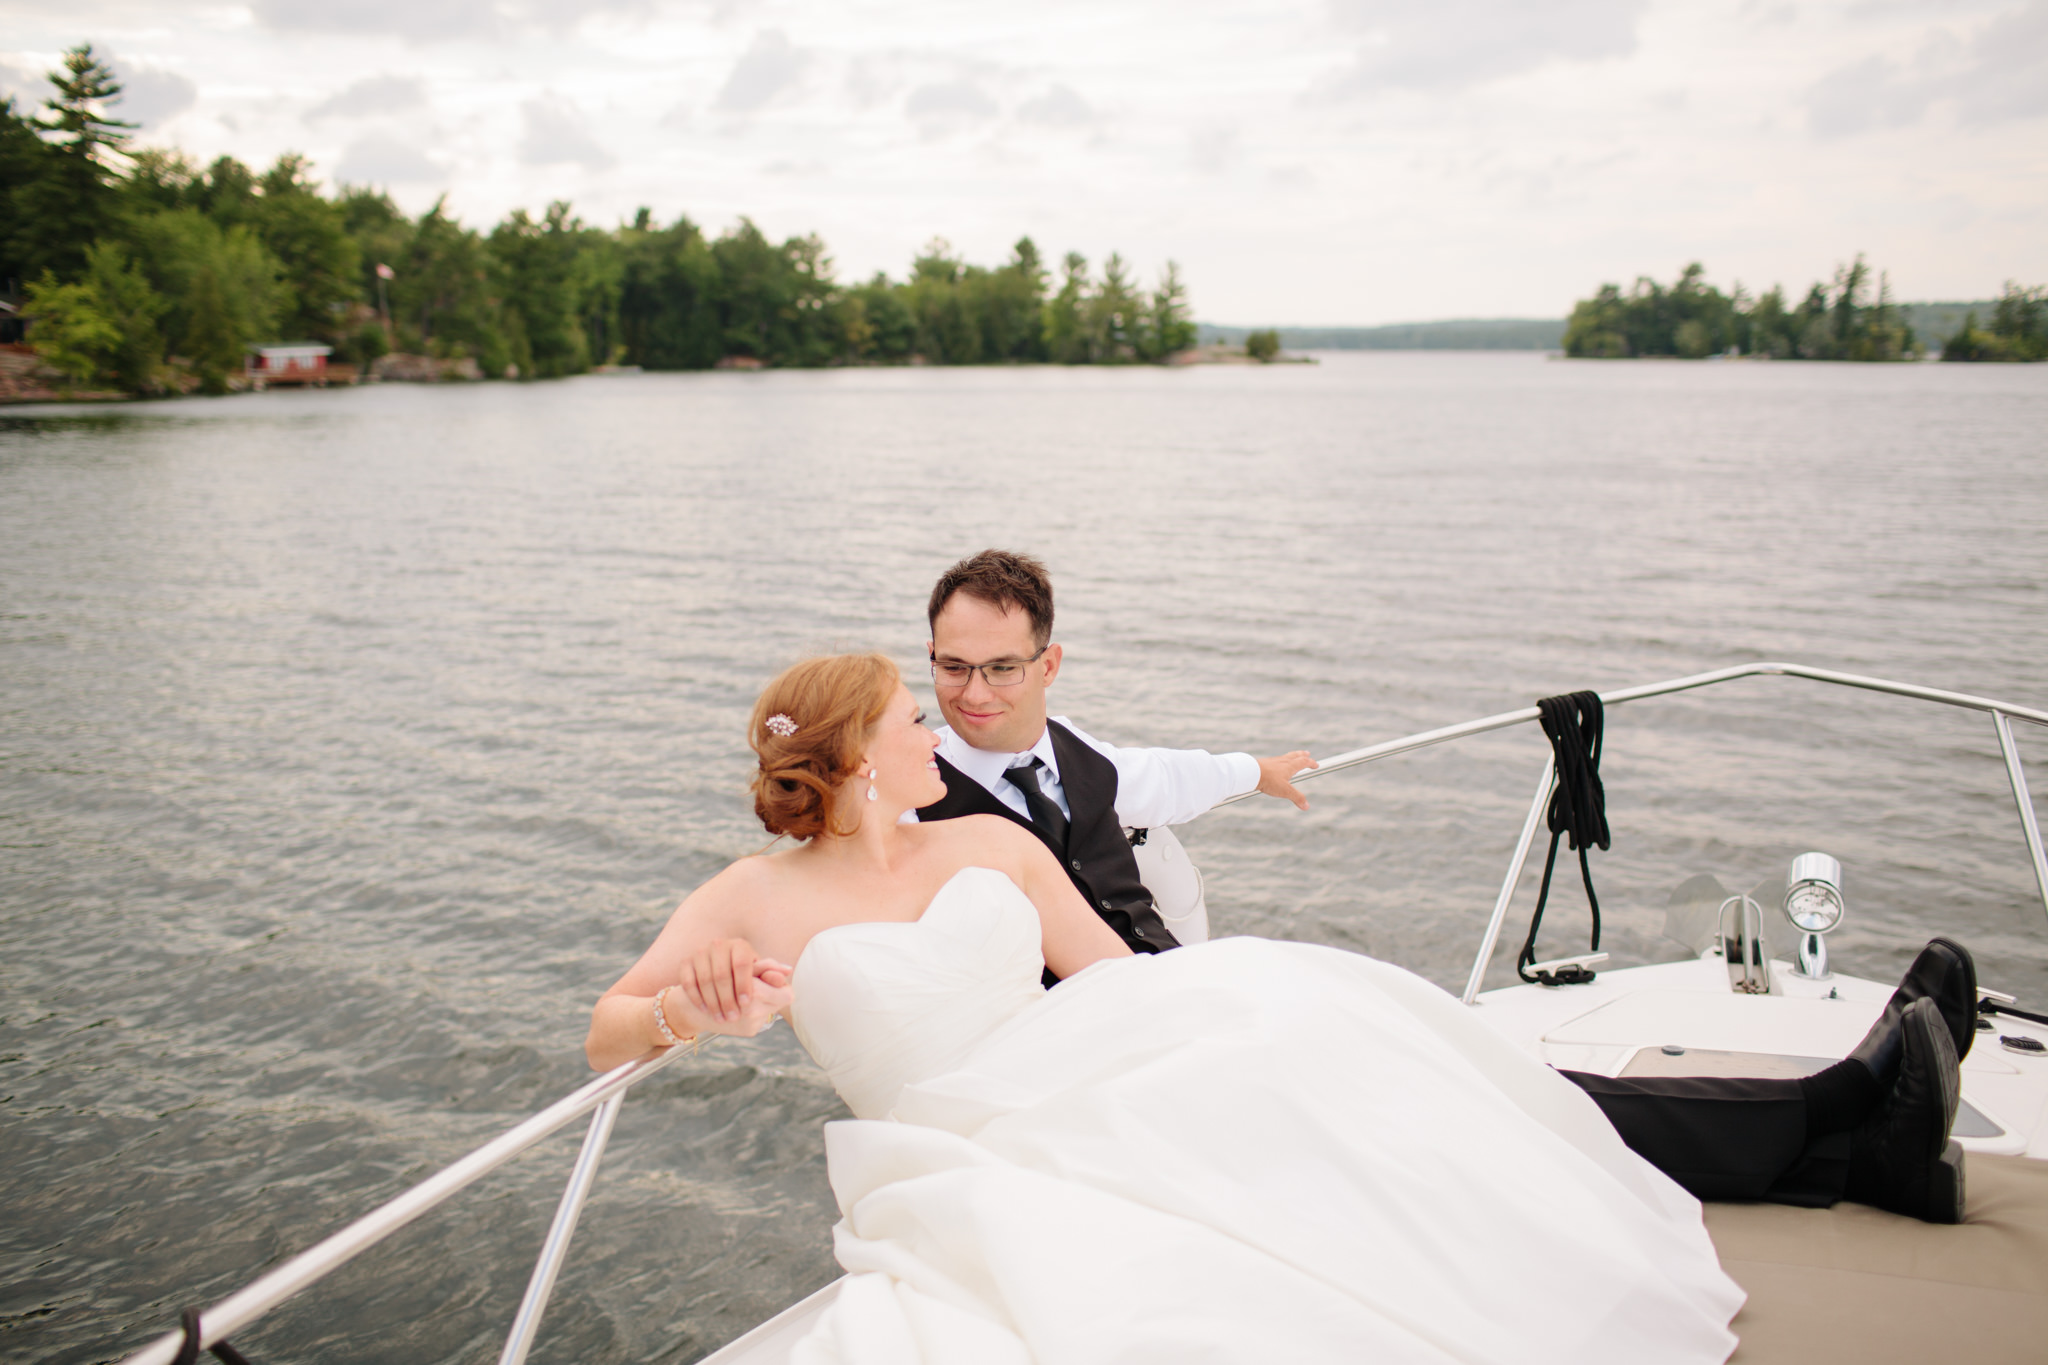 bride and groom on boat after wedding ceremony